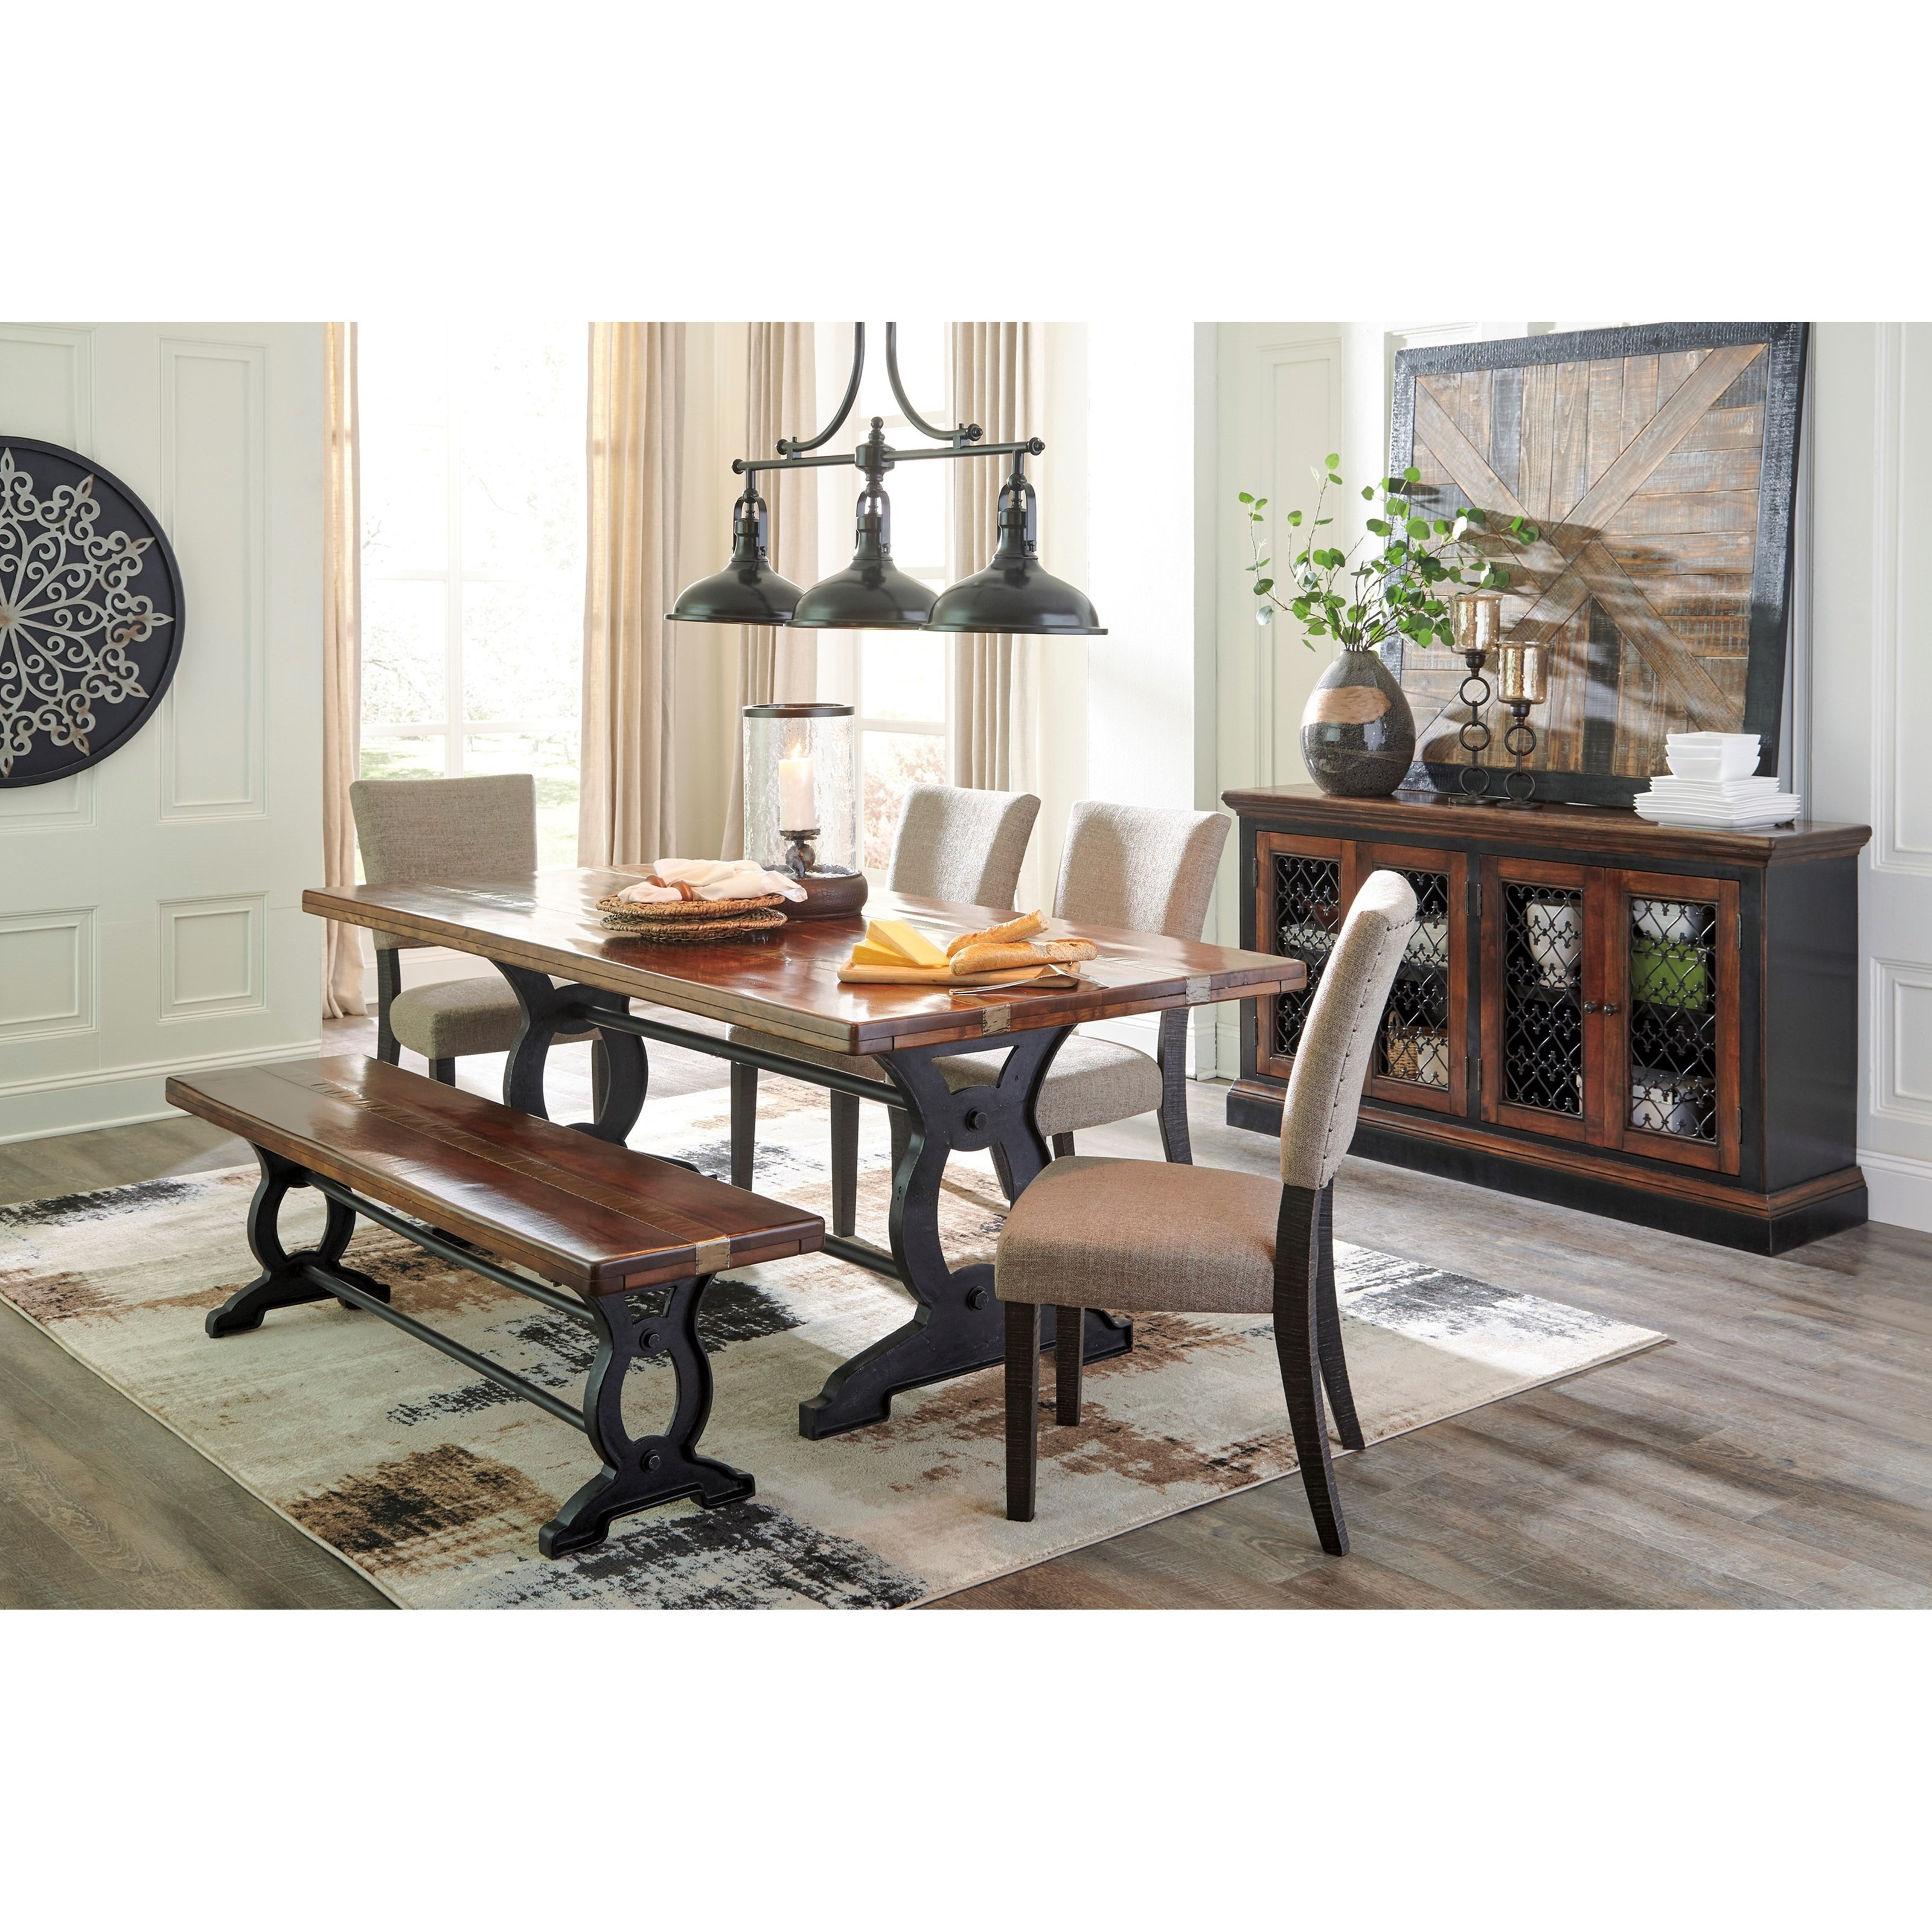 ashley signature design zurani d709 25 solid wood top rectangular dining room table with metal. Black Bedroom Furniture Sets. Home Design Ideas